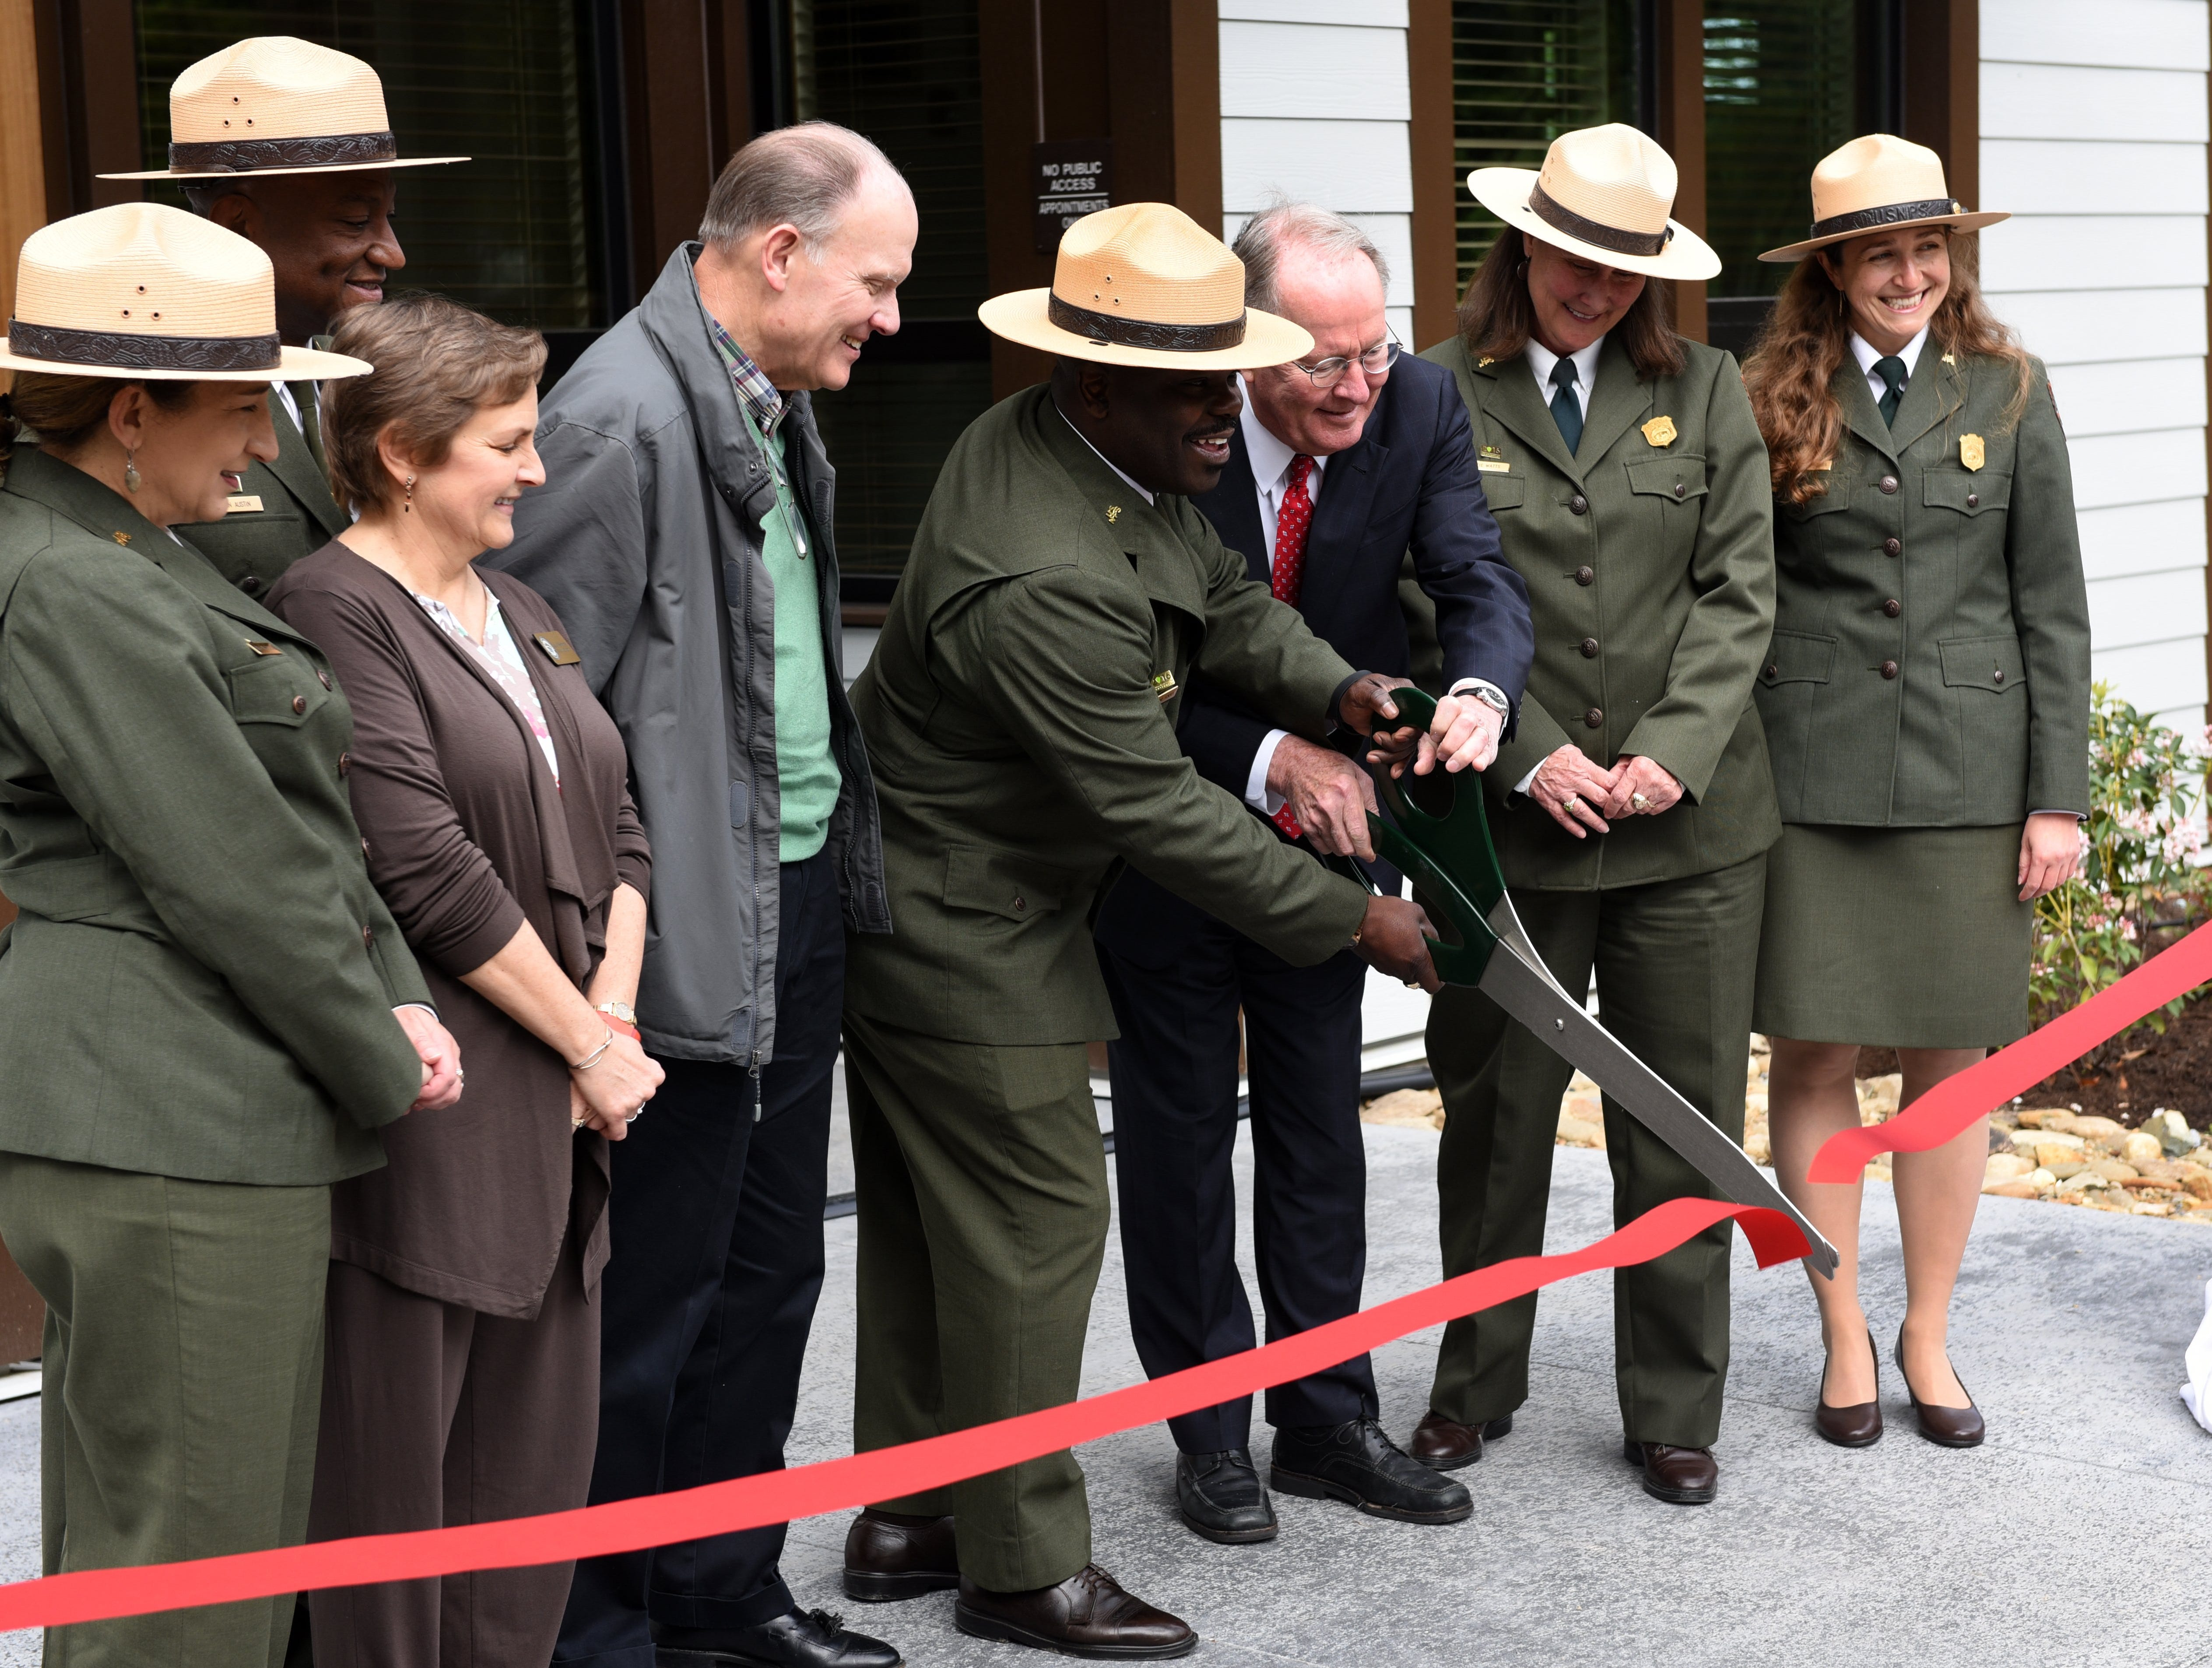 The National Park Service opened its Collections Preservation Center in East Tennessee to maintain items from five parks in Appalachia Friday, May 6, 2016. Holding the scissors cutting the ribbon center are GSMNP Superintendent Cassius Cash and Senator Lamar Alexander. The 14,000-square-foot facility will allow the National Park Service to take care of more than 418,000 artifacts and 1.3 million archival records from the Andrew Johnson National Historic Site, Big South Fork National River and Recreation Area, Cumberland Gap National Historical Park, Great Smoky Mountains National Park and Obed Wild and Scenic River.